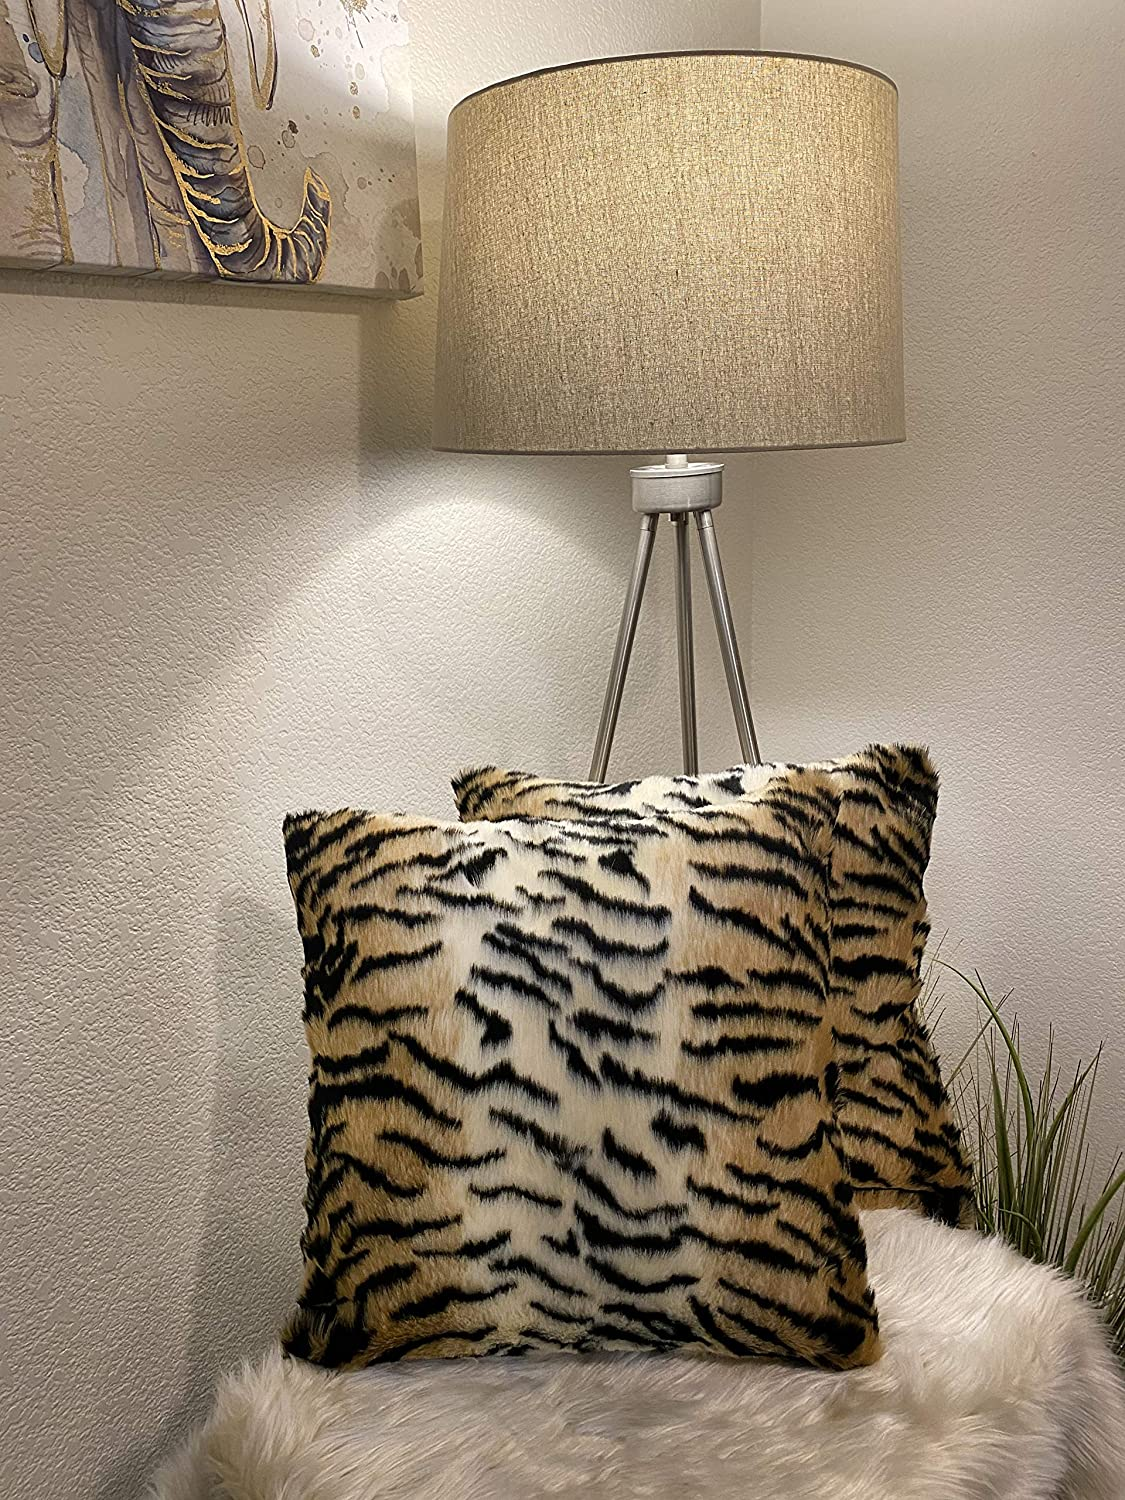 Set of Max 88% OFF 2 Leopard Print Faux Decorations Covers Pillow Fur Anima Low price